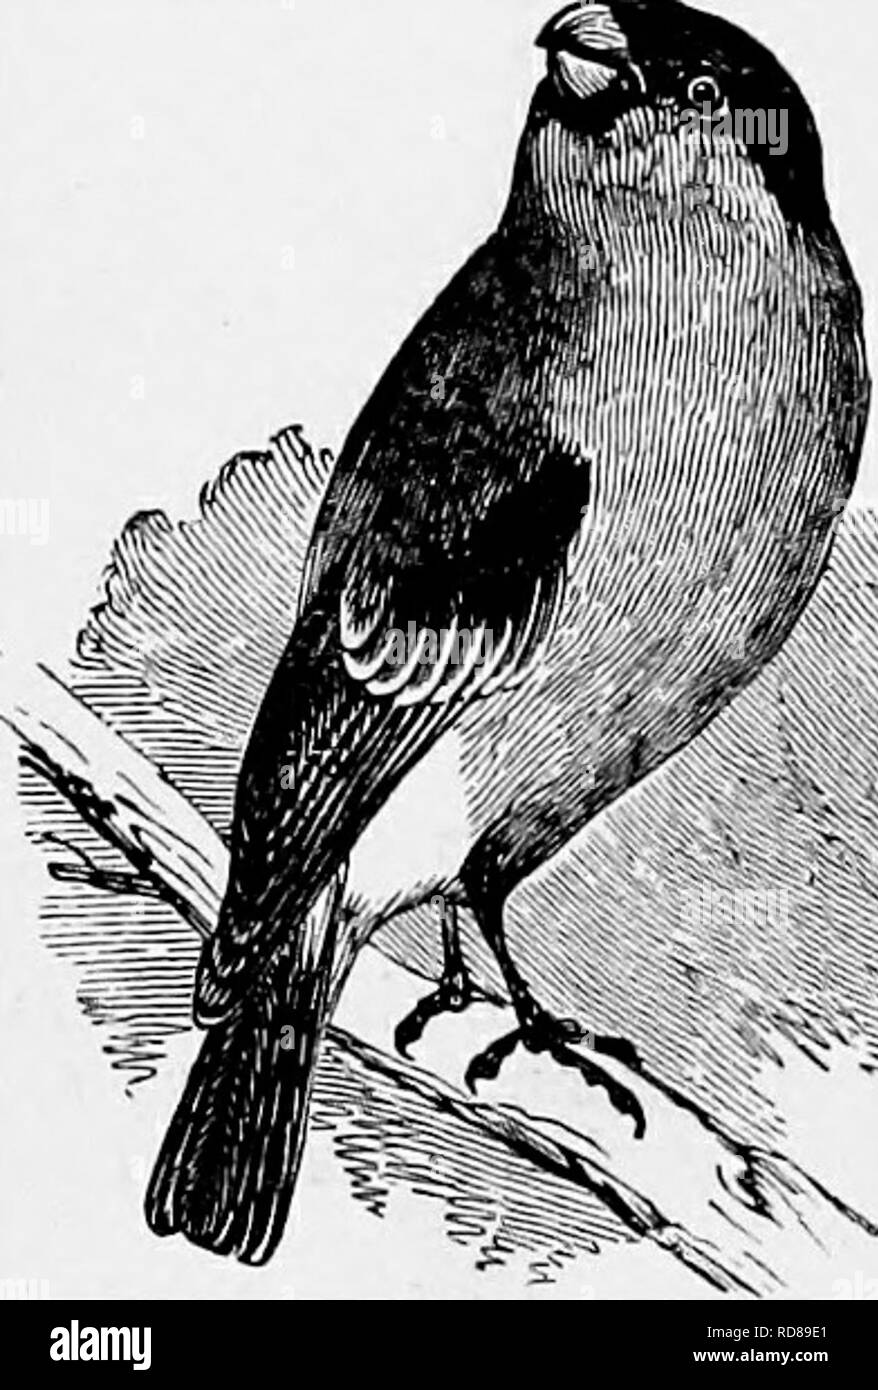 . The popular natural history . Zoology. 348 THE BULLFISCH. mole-hill, or the old furrow of a plough. It is very well concealed, the top of the nest being only just on a level with the surface of the ground, and sometimes below it. I have known several instances where the young Larks would suffer themselves to be fed by hand as they sat in their nests, but the parent birds always seemed distressed at the intrusion into their premises. The materials of which it is made are dry grasses, bents, leaves, and hair, the hair being generally used in the hning. It will be seen that the sober colouring  - Stock Image